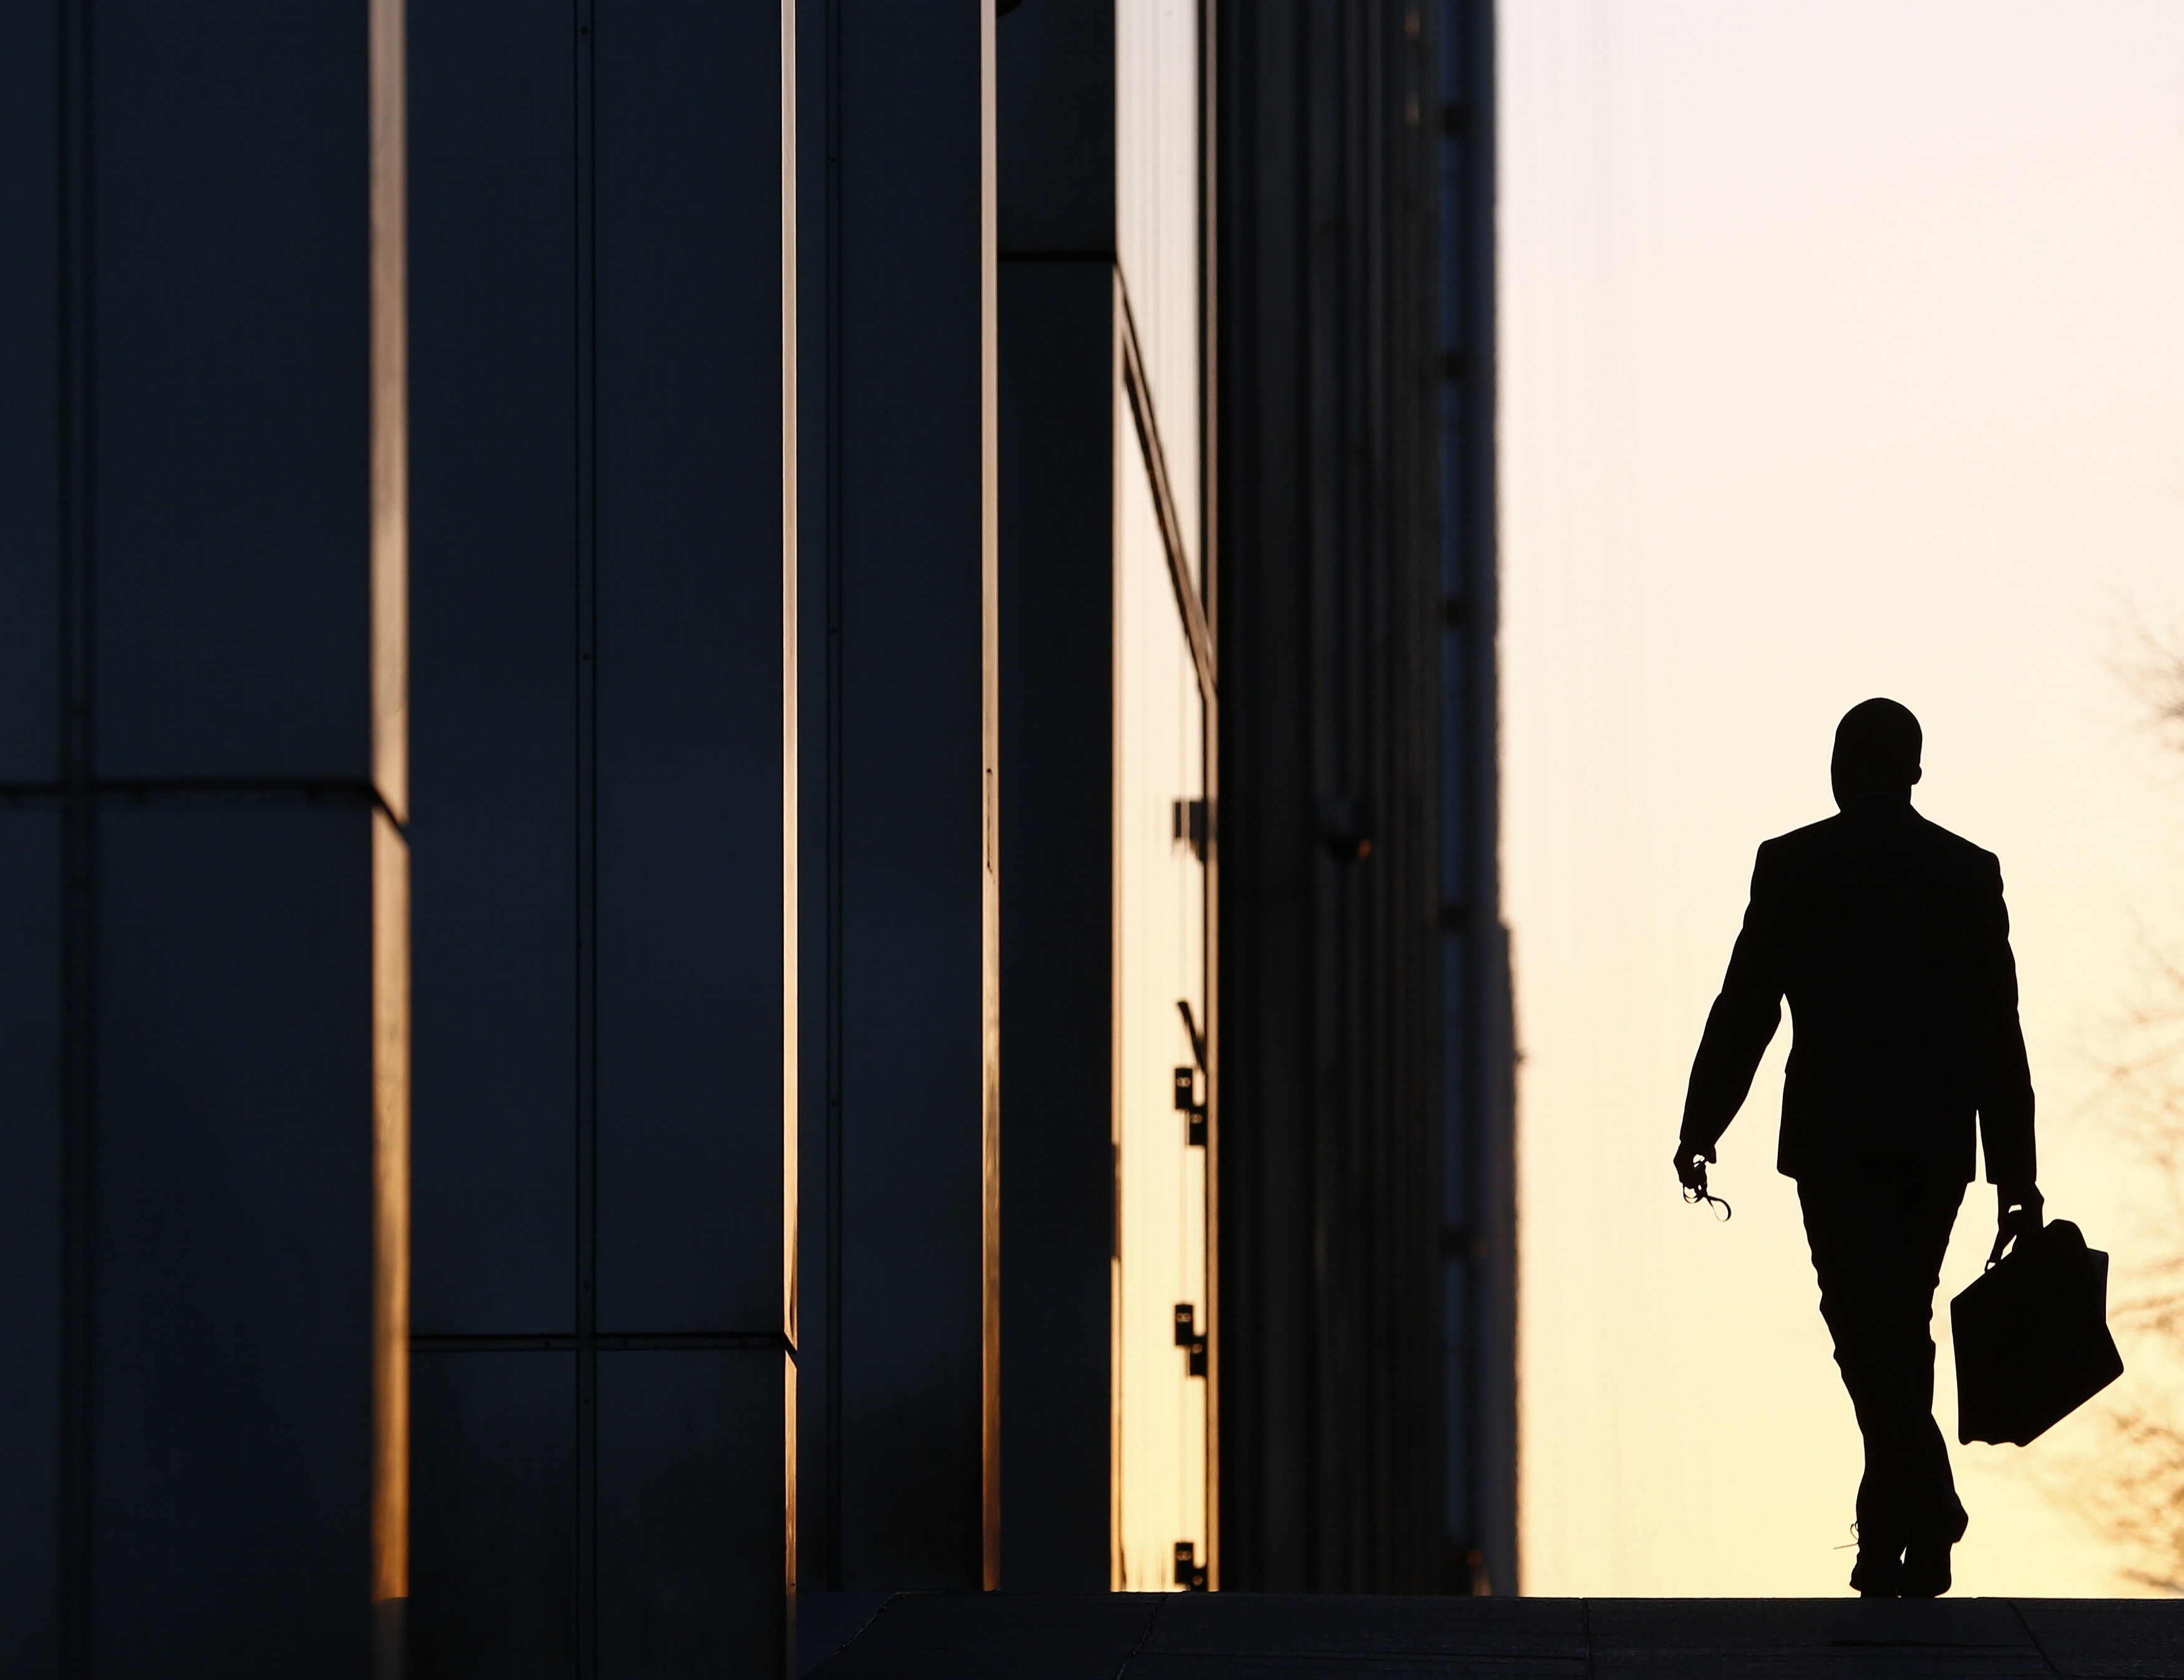 a person carrying a briefcase as they walk among office buildings